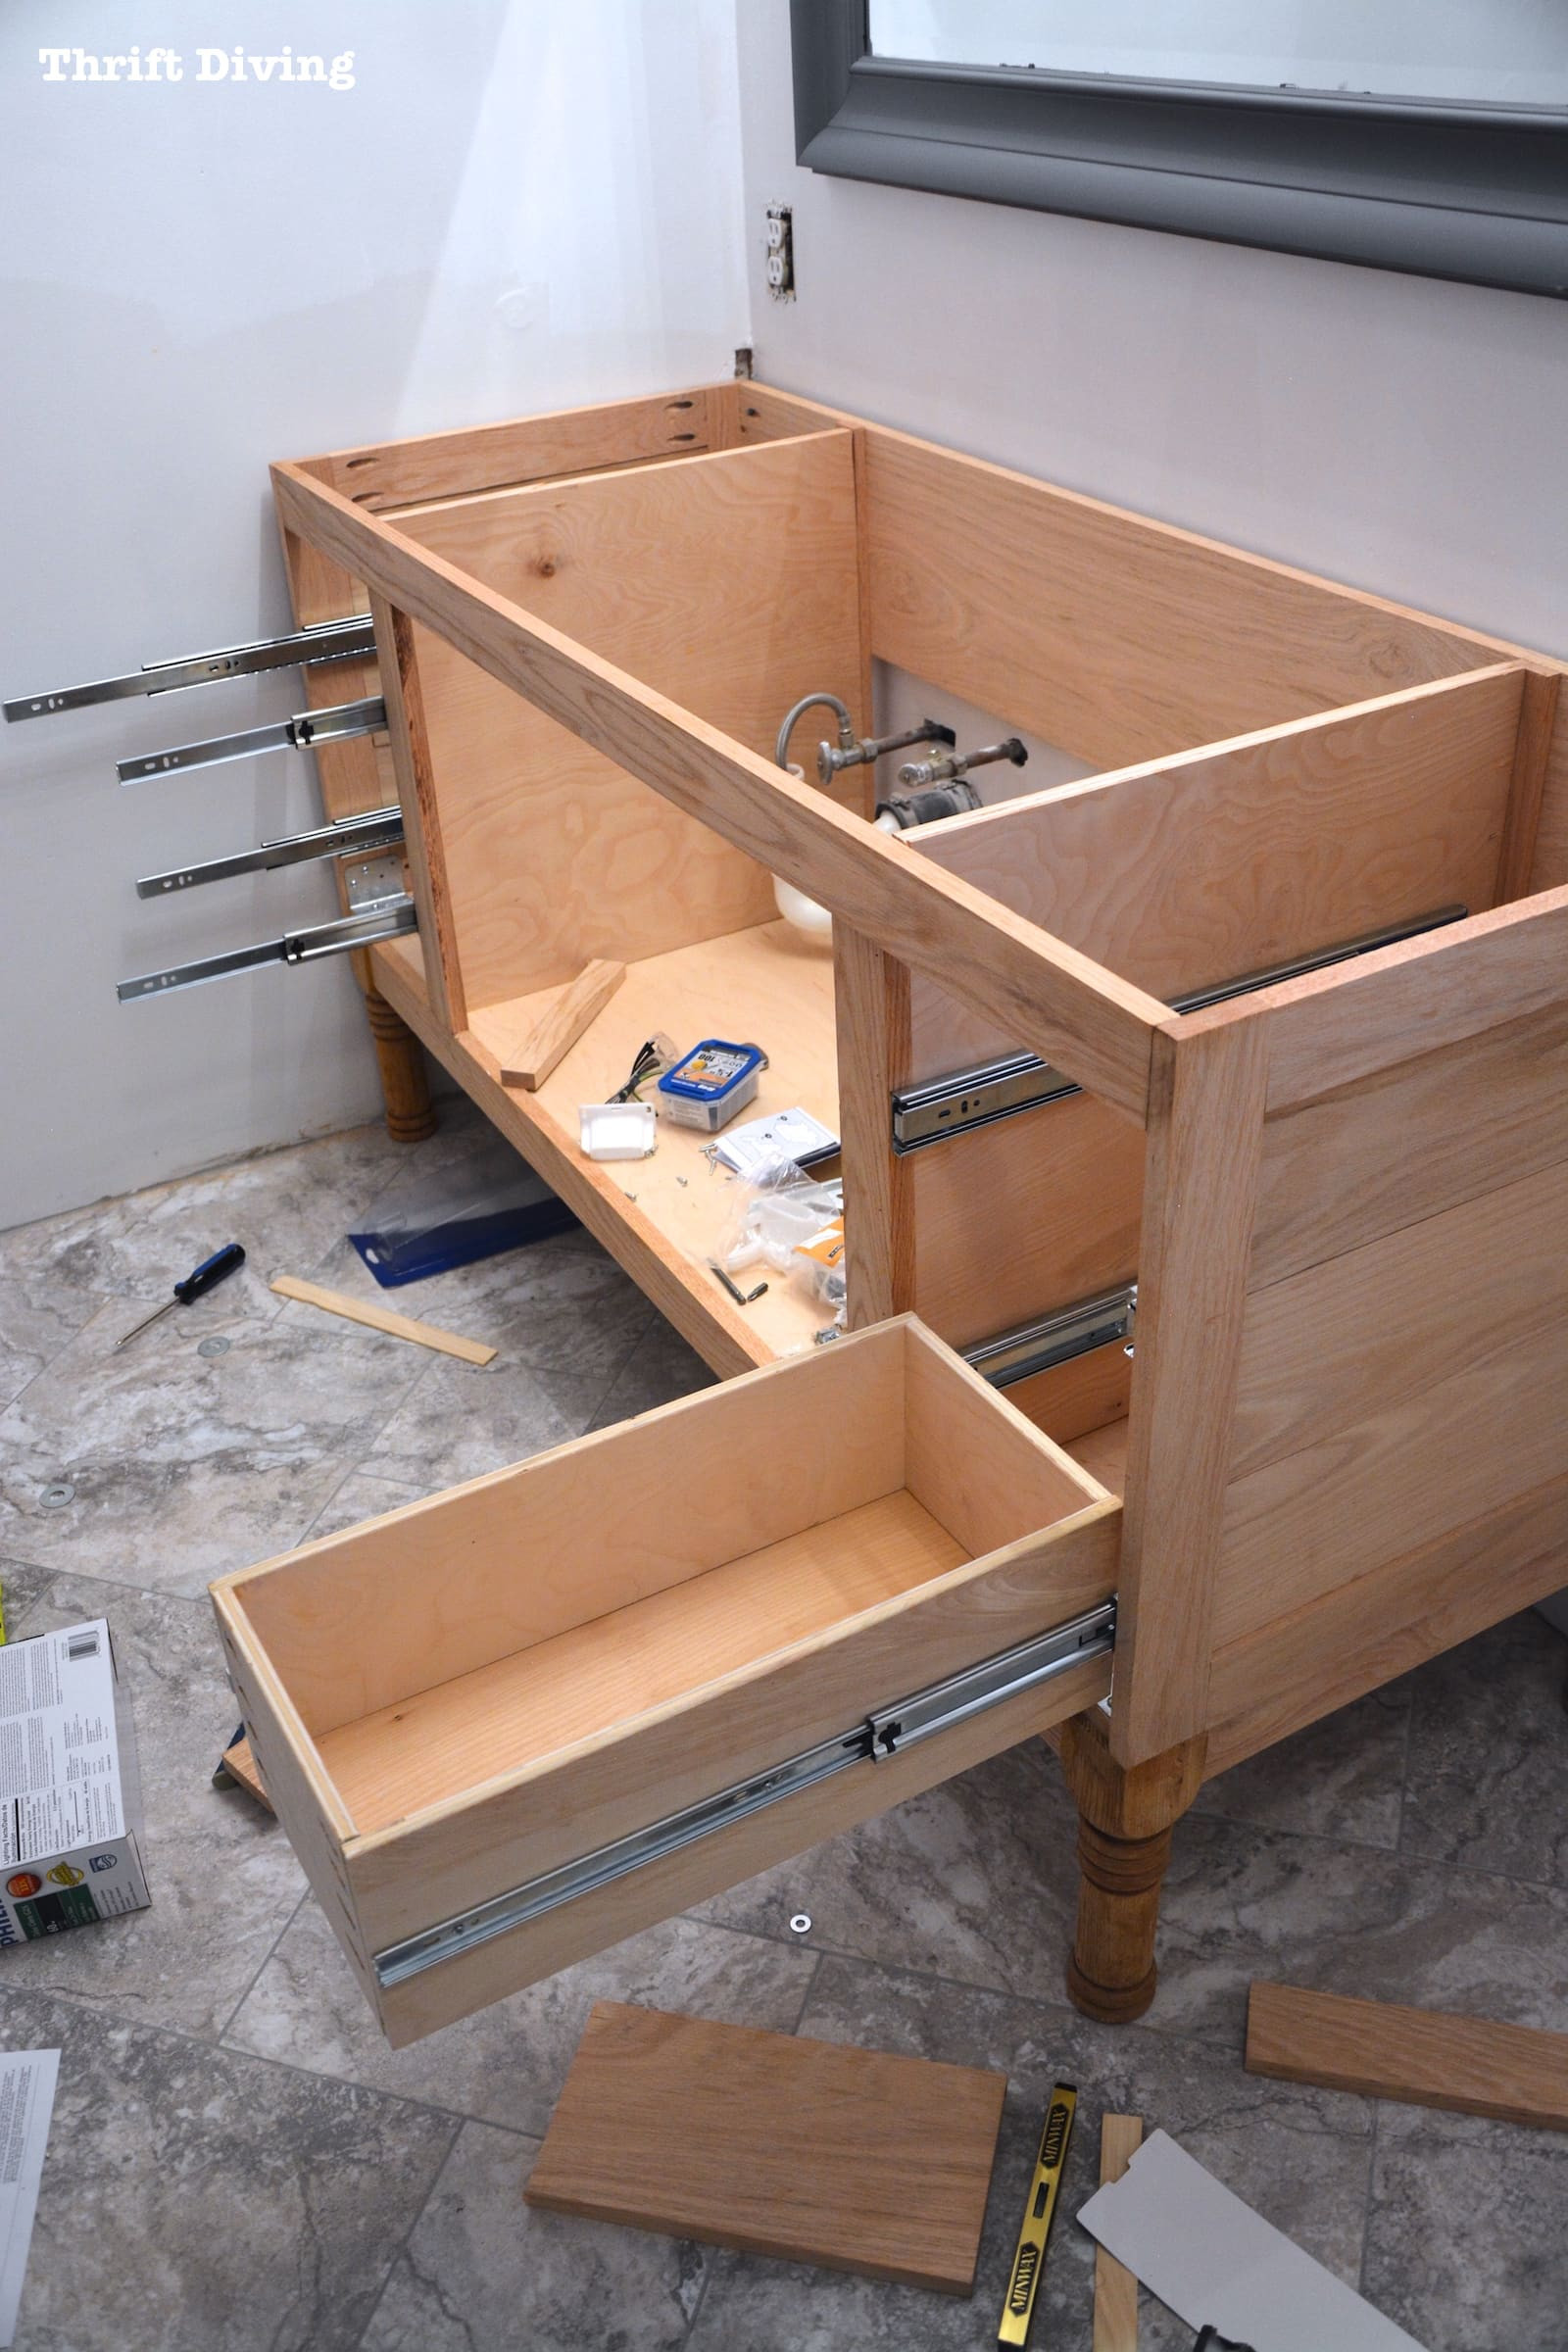 Best ideas about DIY Kitchen Drawers . Save or Pin Build a DIY Bathroom Vanity Part 4 Making the Drawers Now.